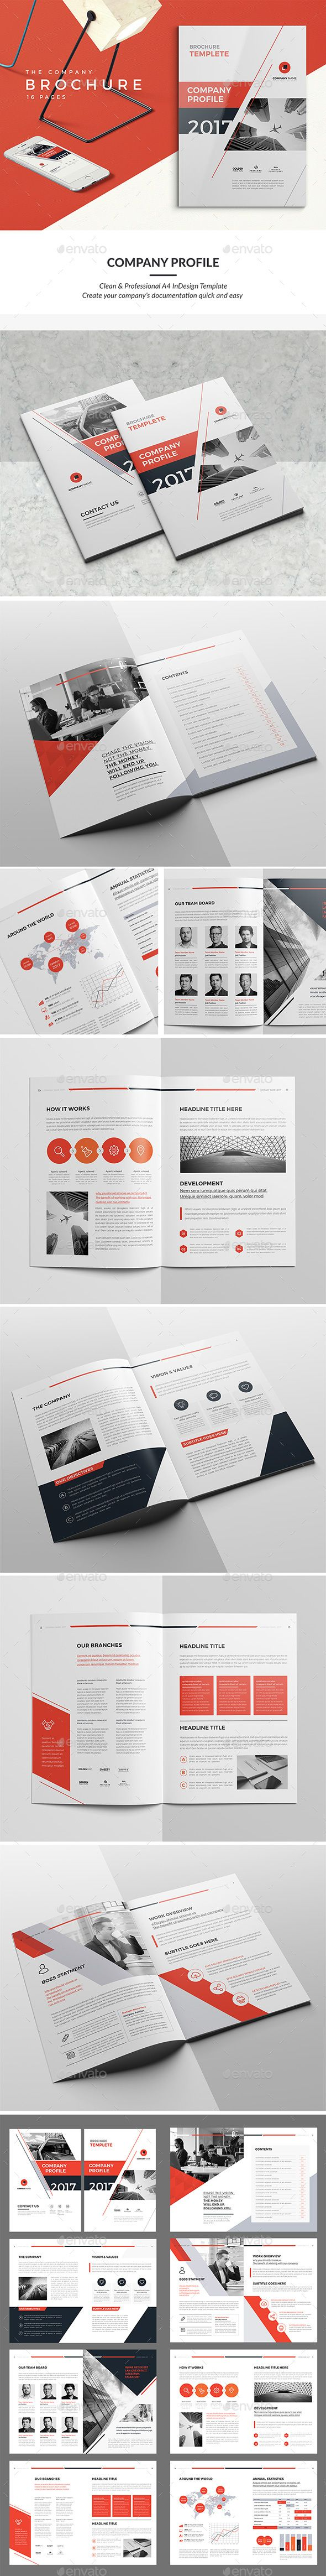 Company Profile Brochure 2017 Template InDesign INDD